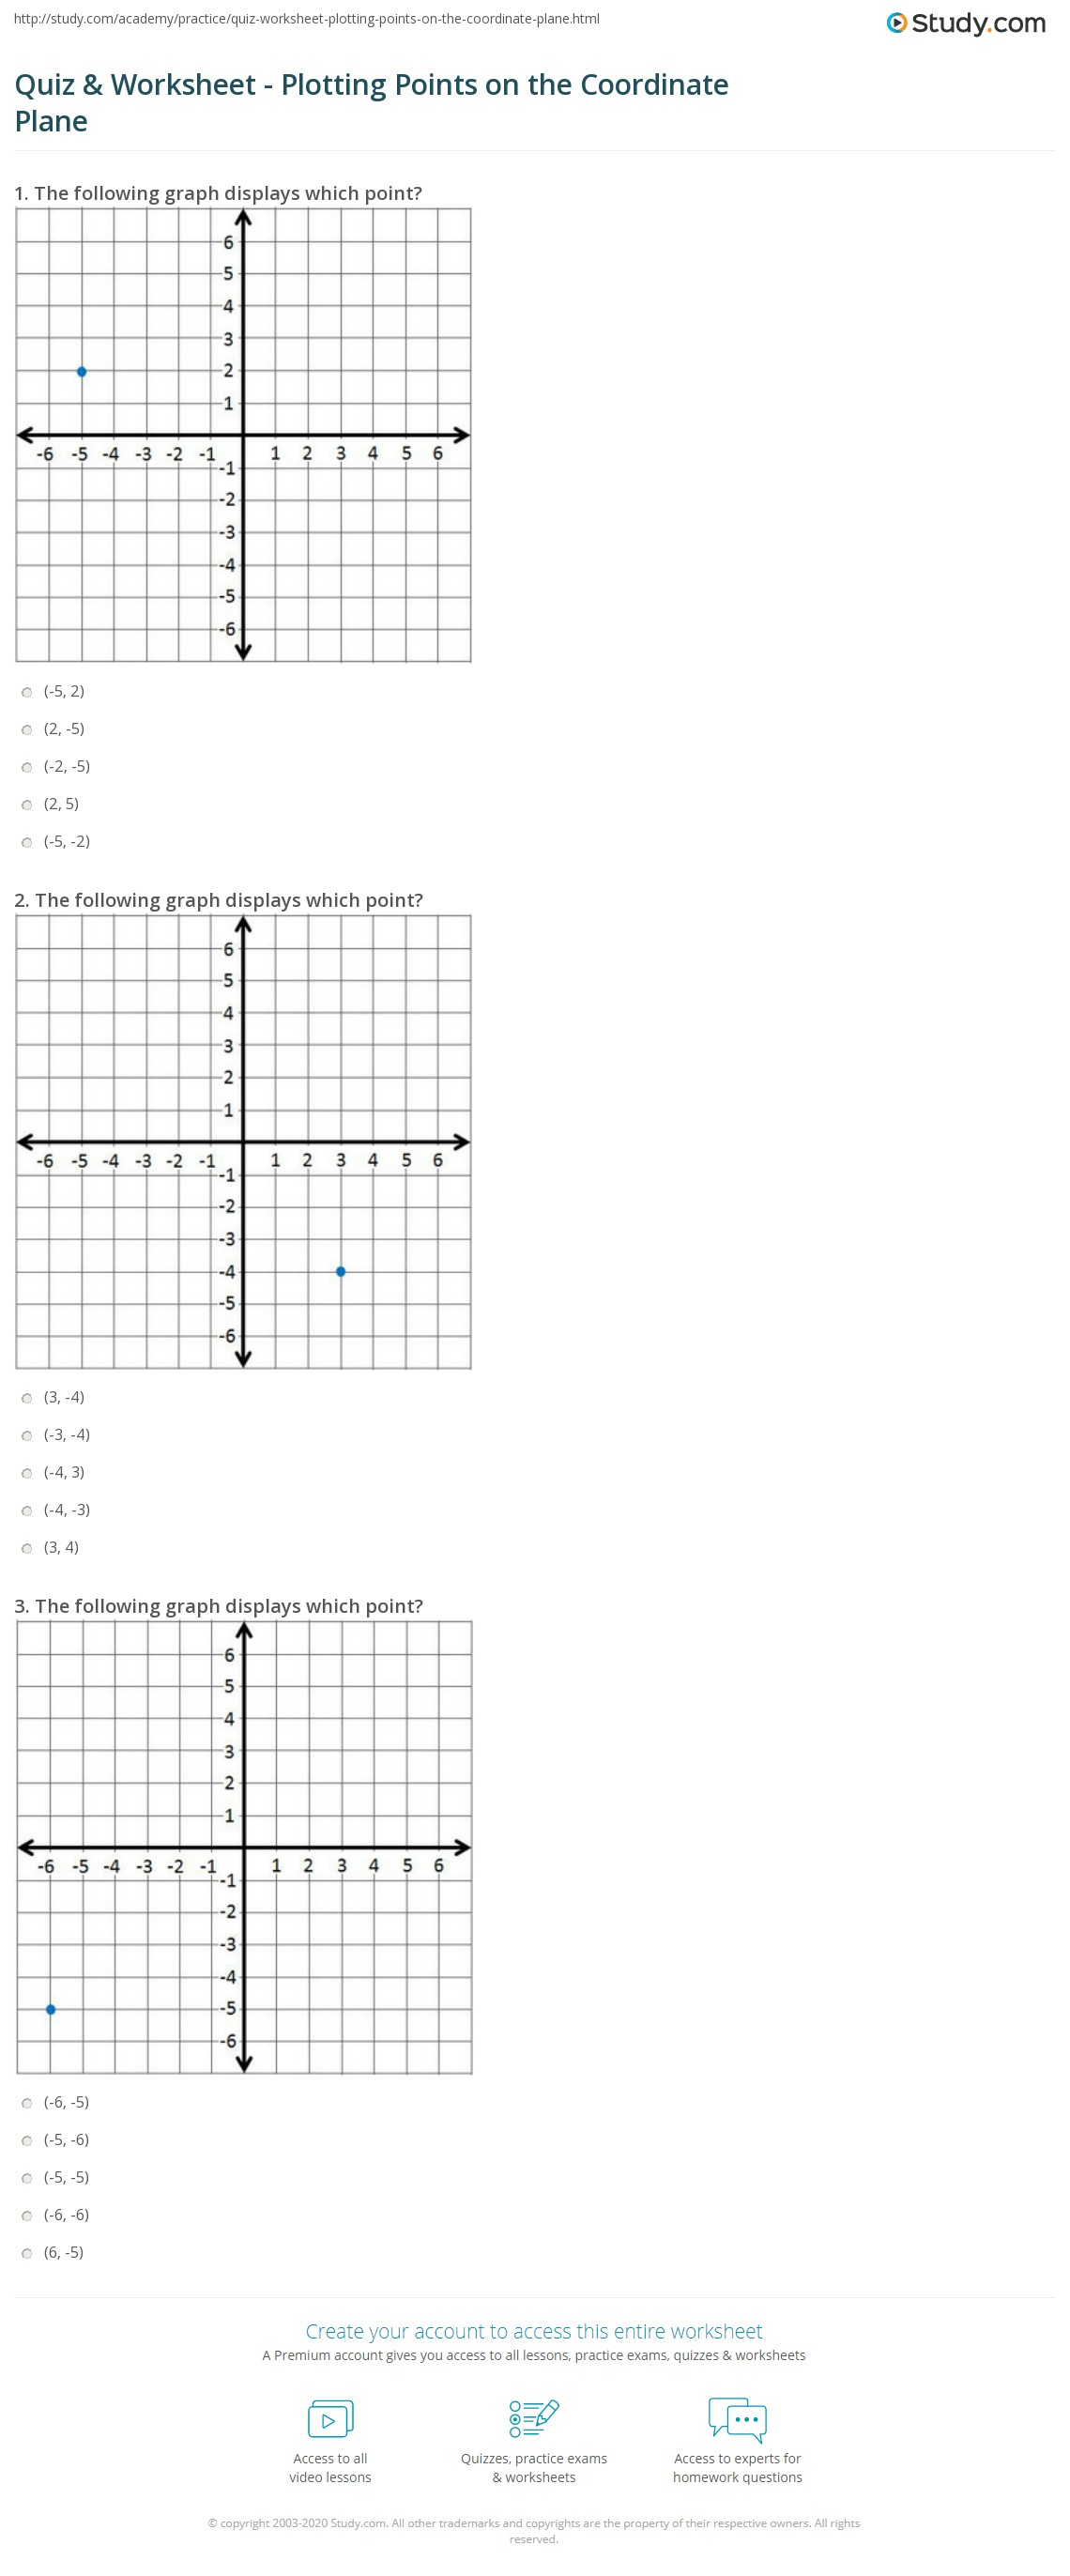 worksheet Coordinate Graph Worksheet quiz worksheet plotting points on the coordinate plane study com print worksheet